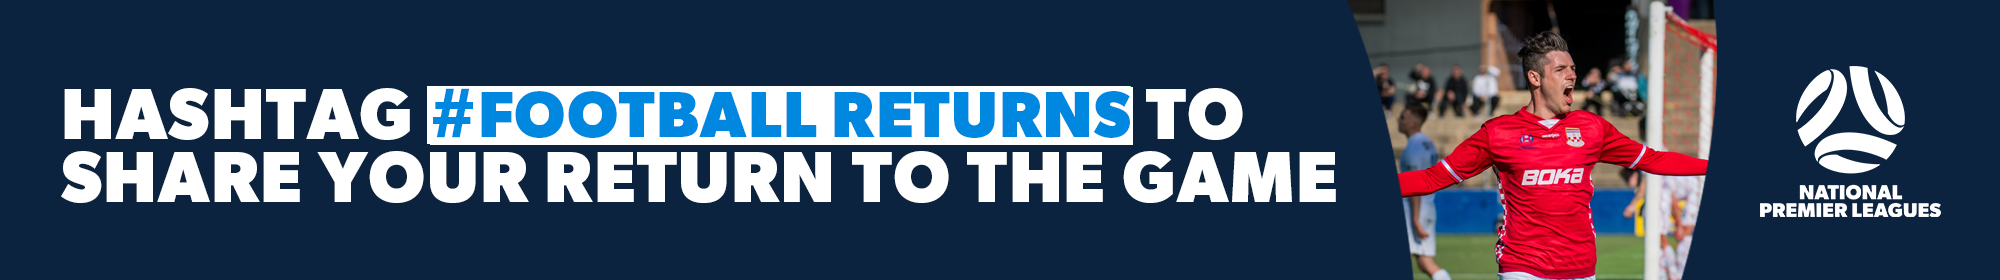 Football-Returns-Hashtag-NPL